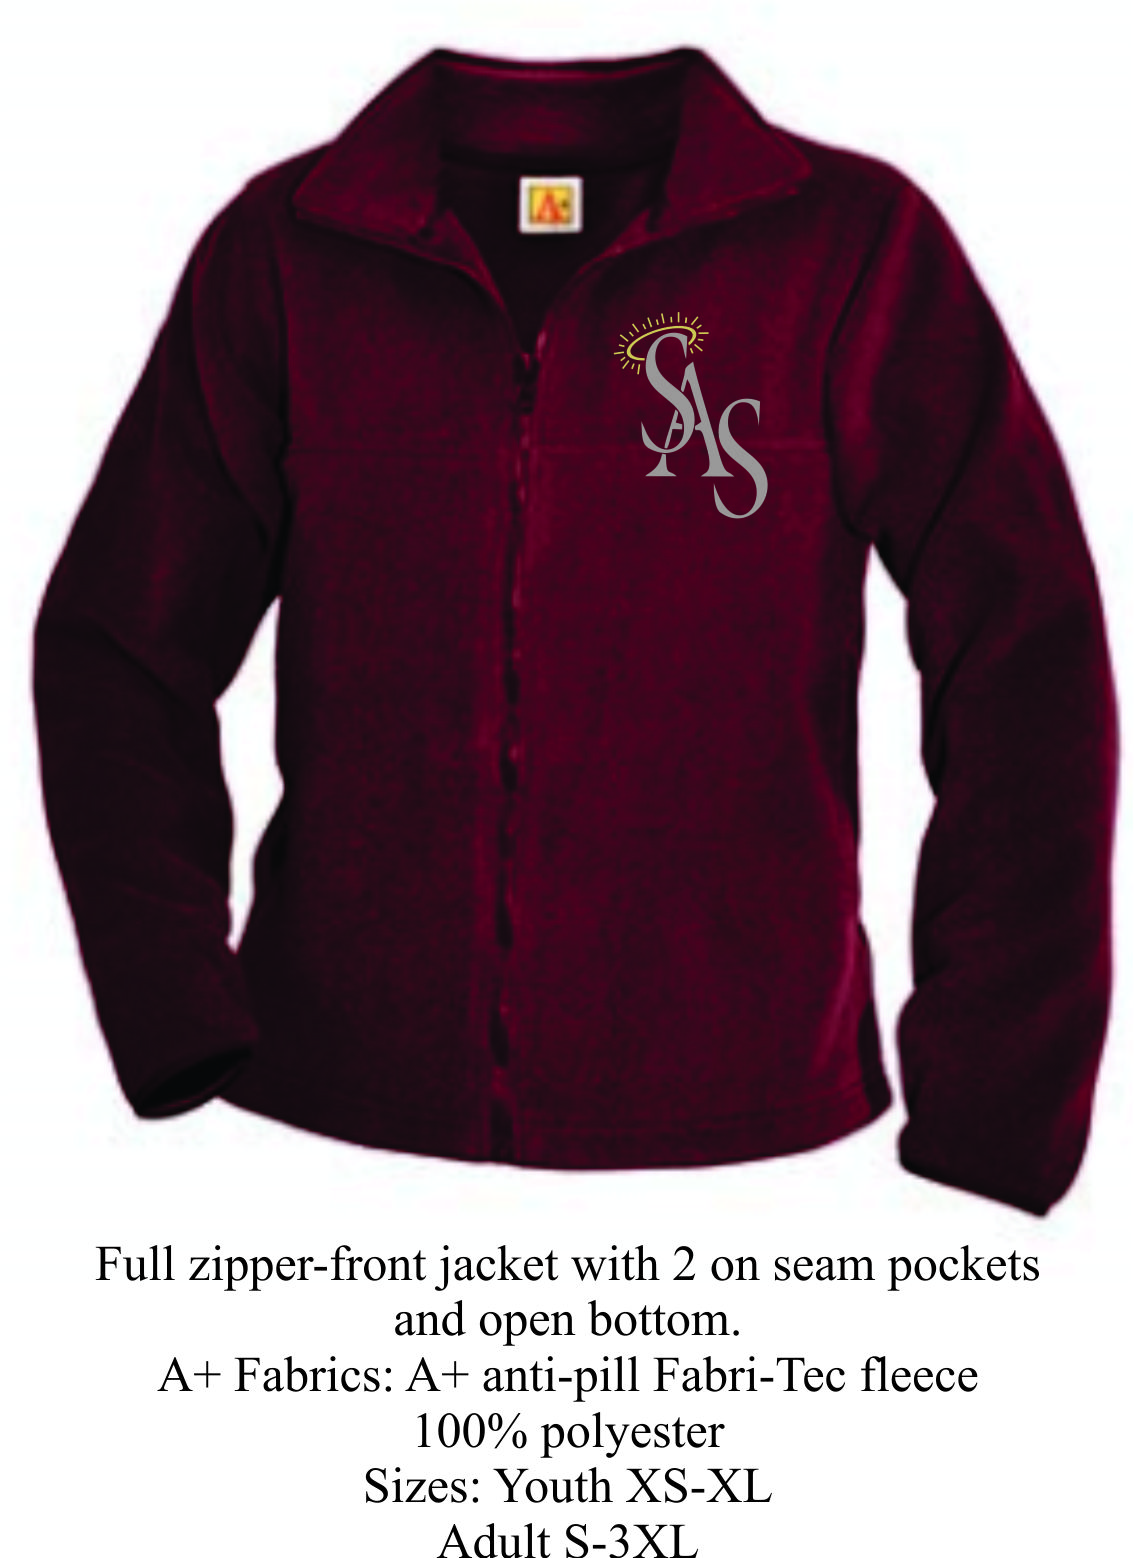 Full Zipper Gray/Maroon Fleece Jacket w/ SAS Logo